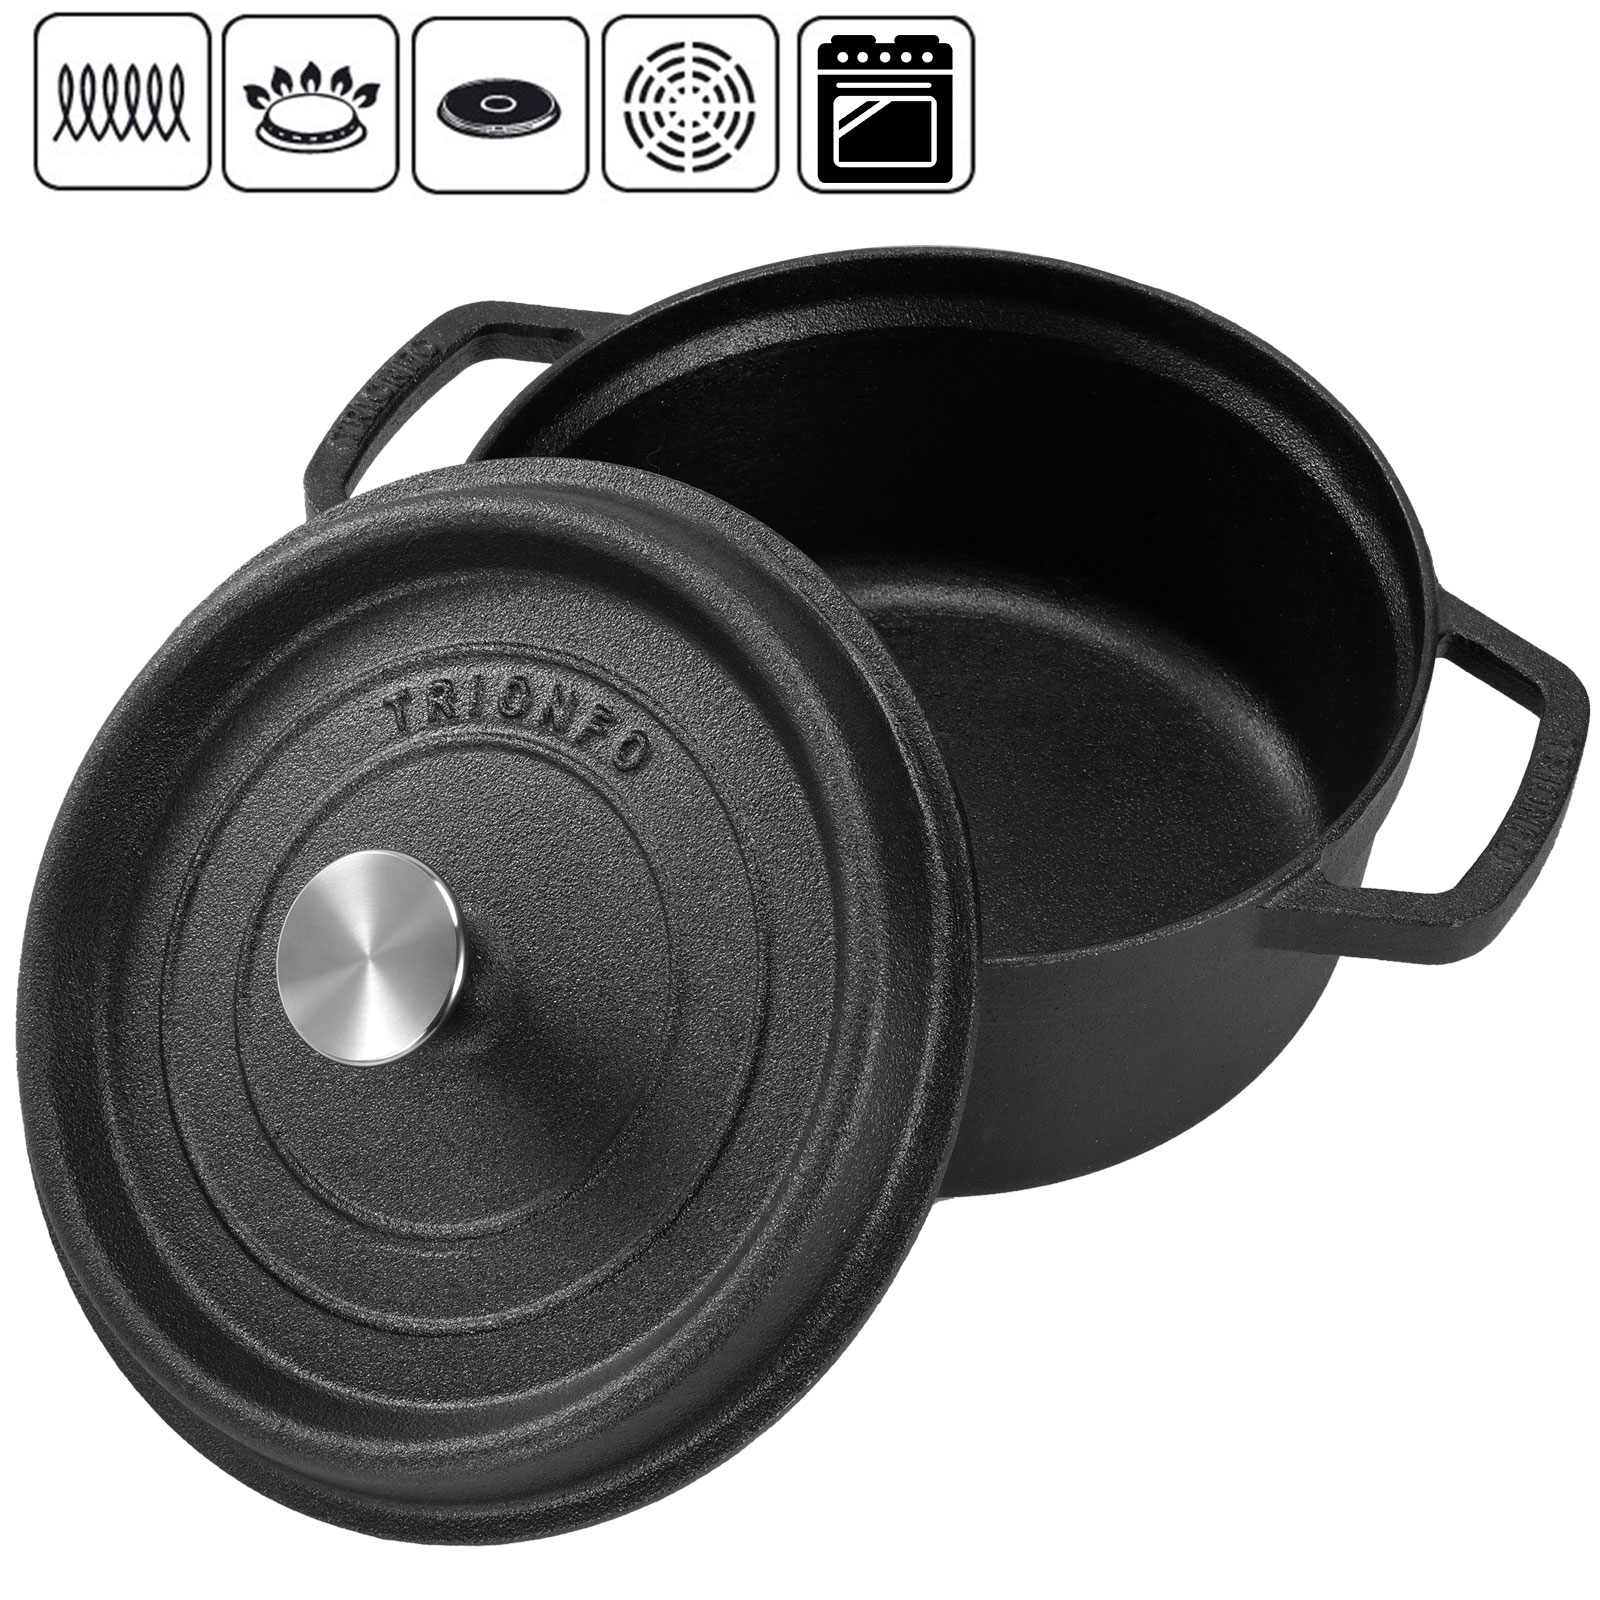 4 5 quart cast iron dutch oven pot cookware lid outdoor home kitchen cooking. Black Bedroom Furniture Sets. Home Design Ideas